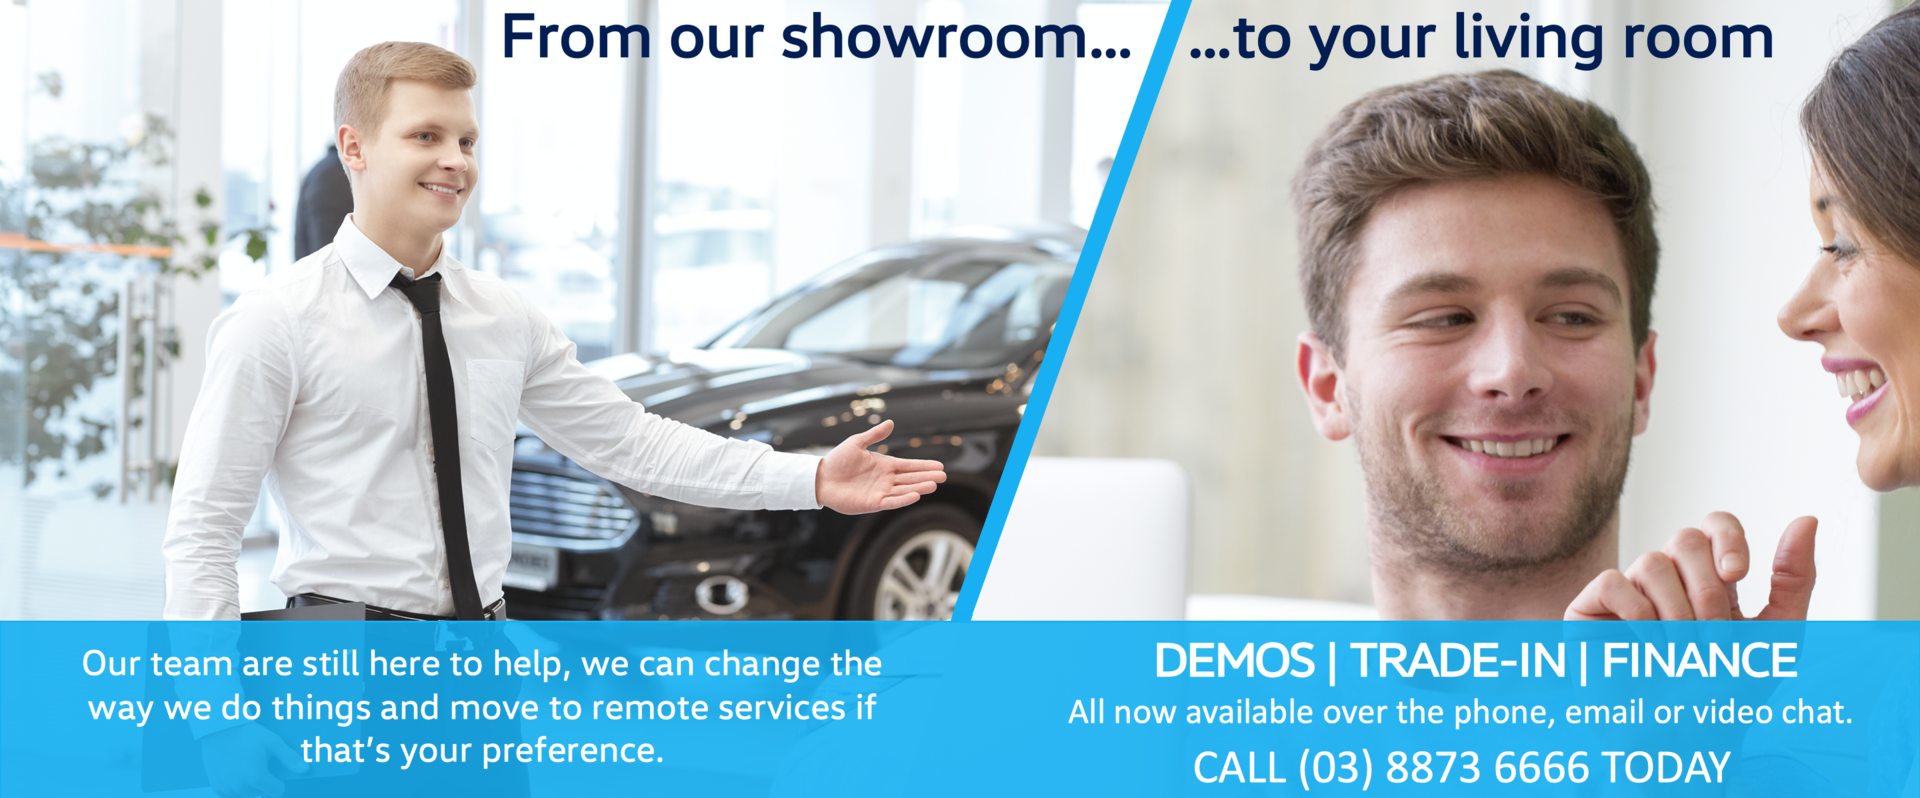 your living room, now our showroom